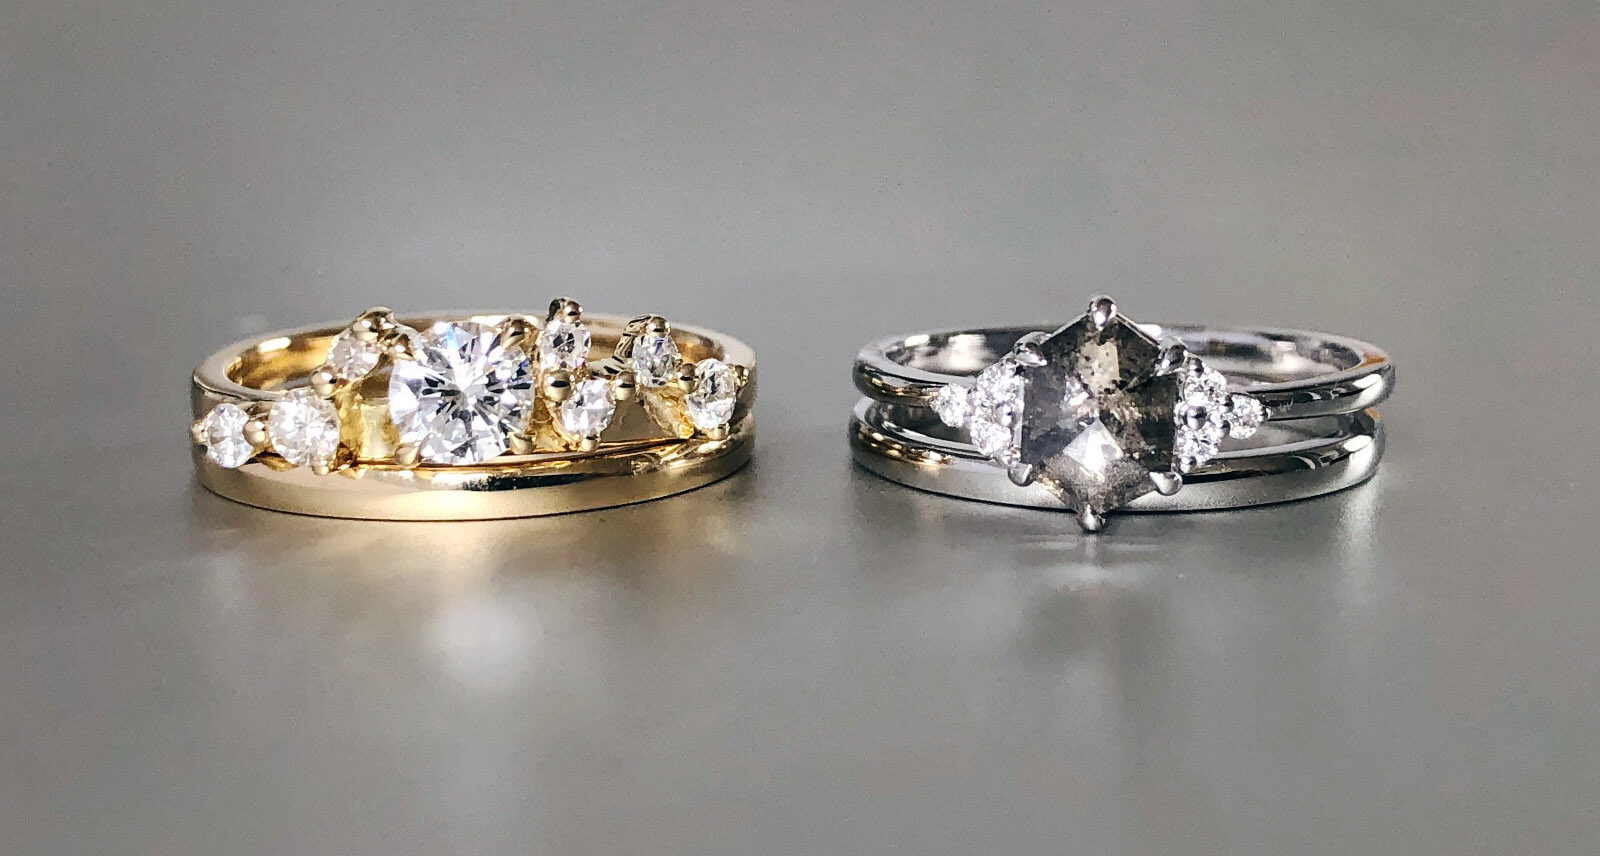 Hers and hers wedding and engagement rings